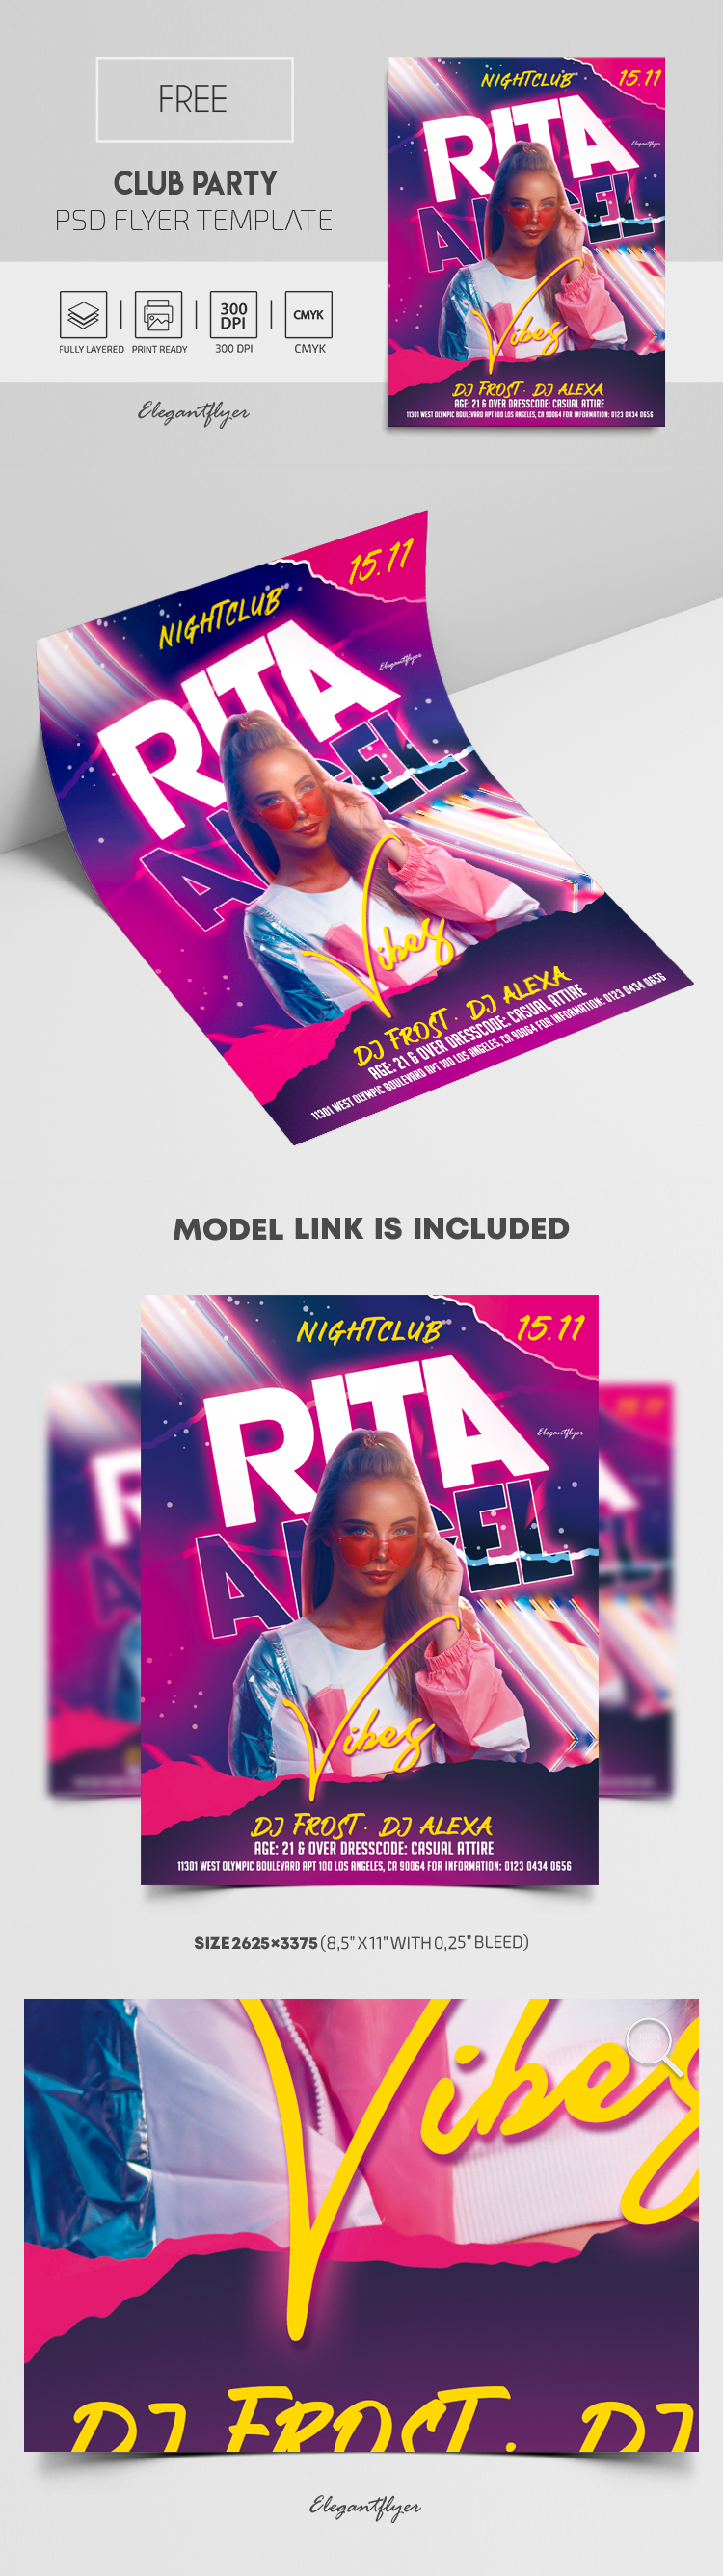 Club Party – Free Flyer PSD Template